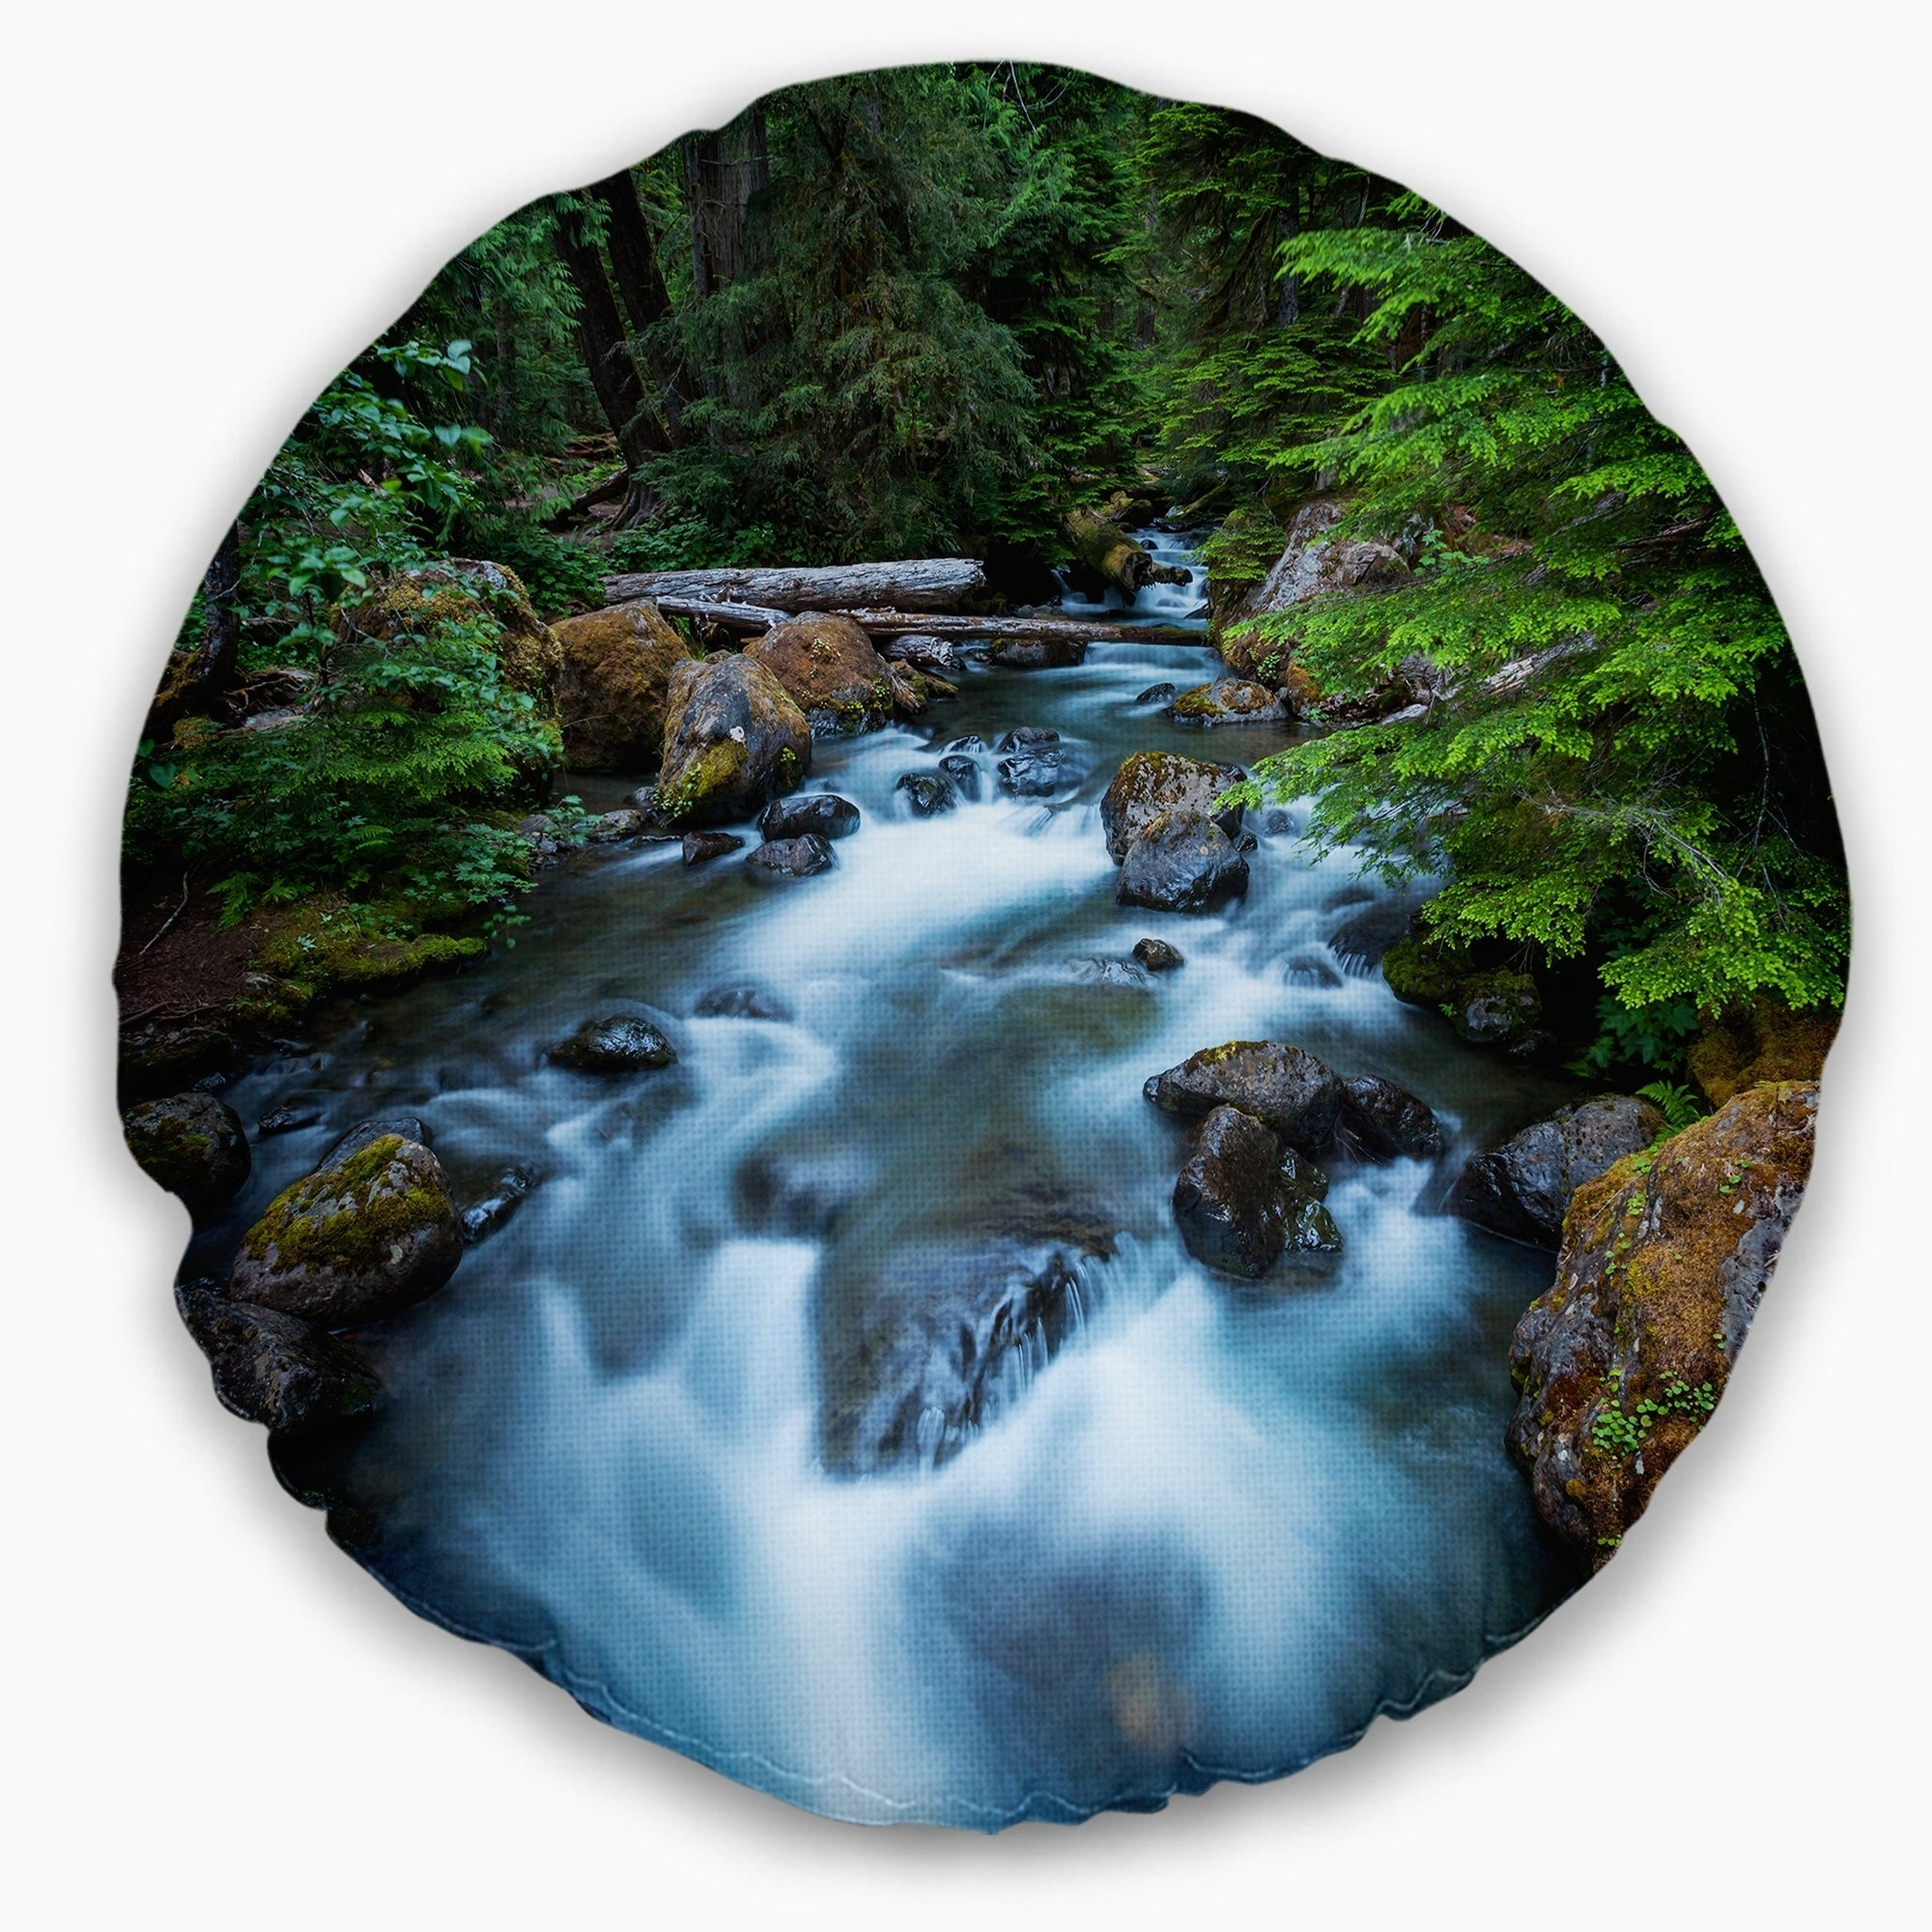 Shop Designart Rushing Water In Forest Creek Landscape Printed Throw Pillow Free Shipping On Orders Over 45 Overstock 20948603